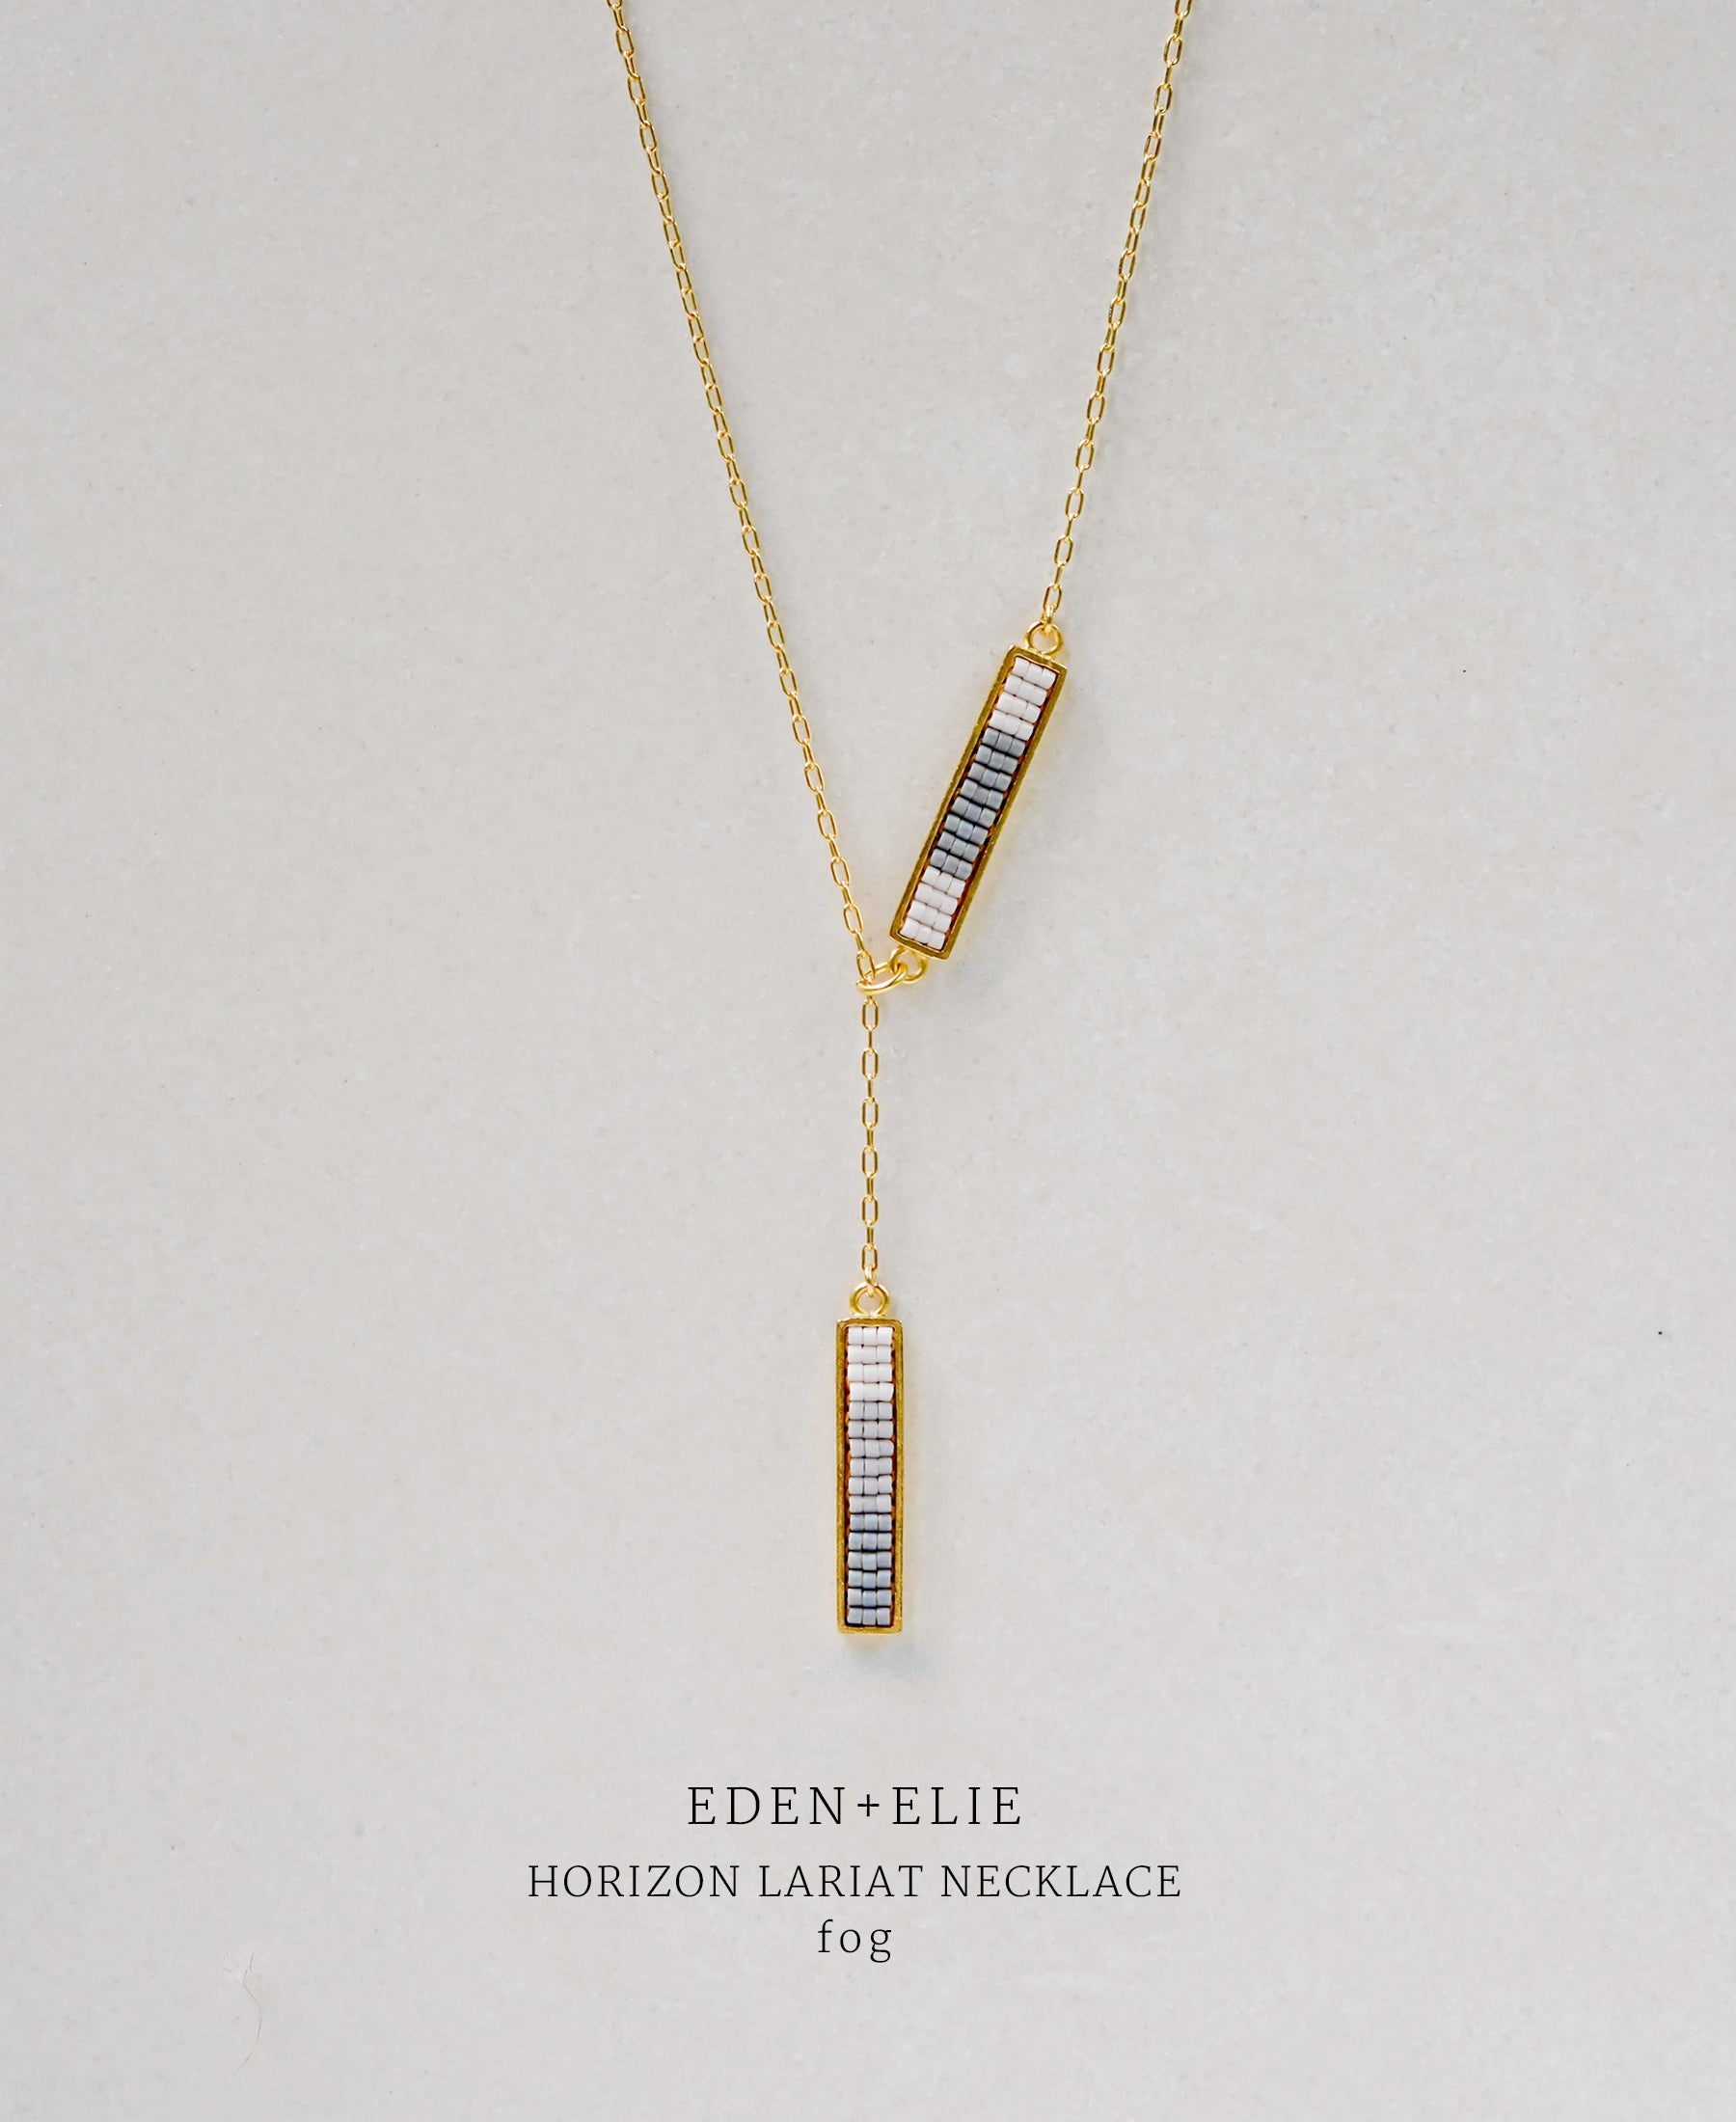 EDEN + ELIE Horizon Lariat necklace - fog grey